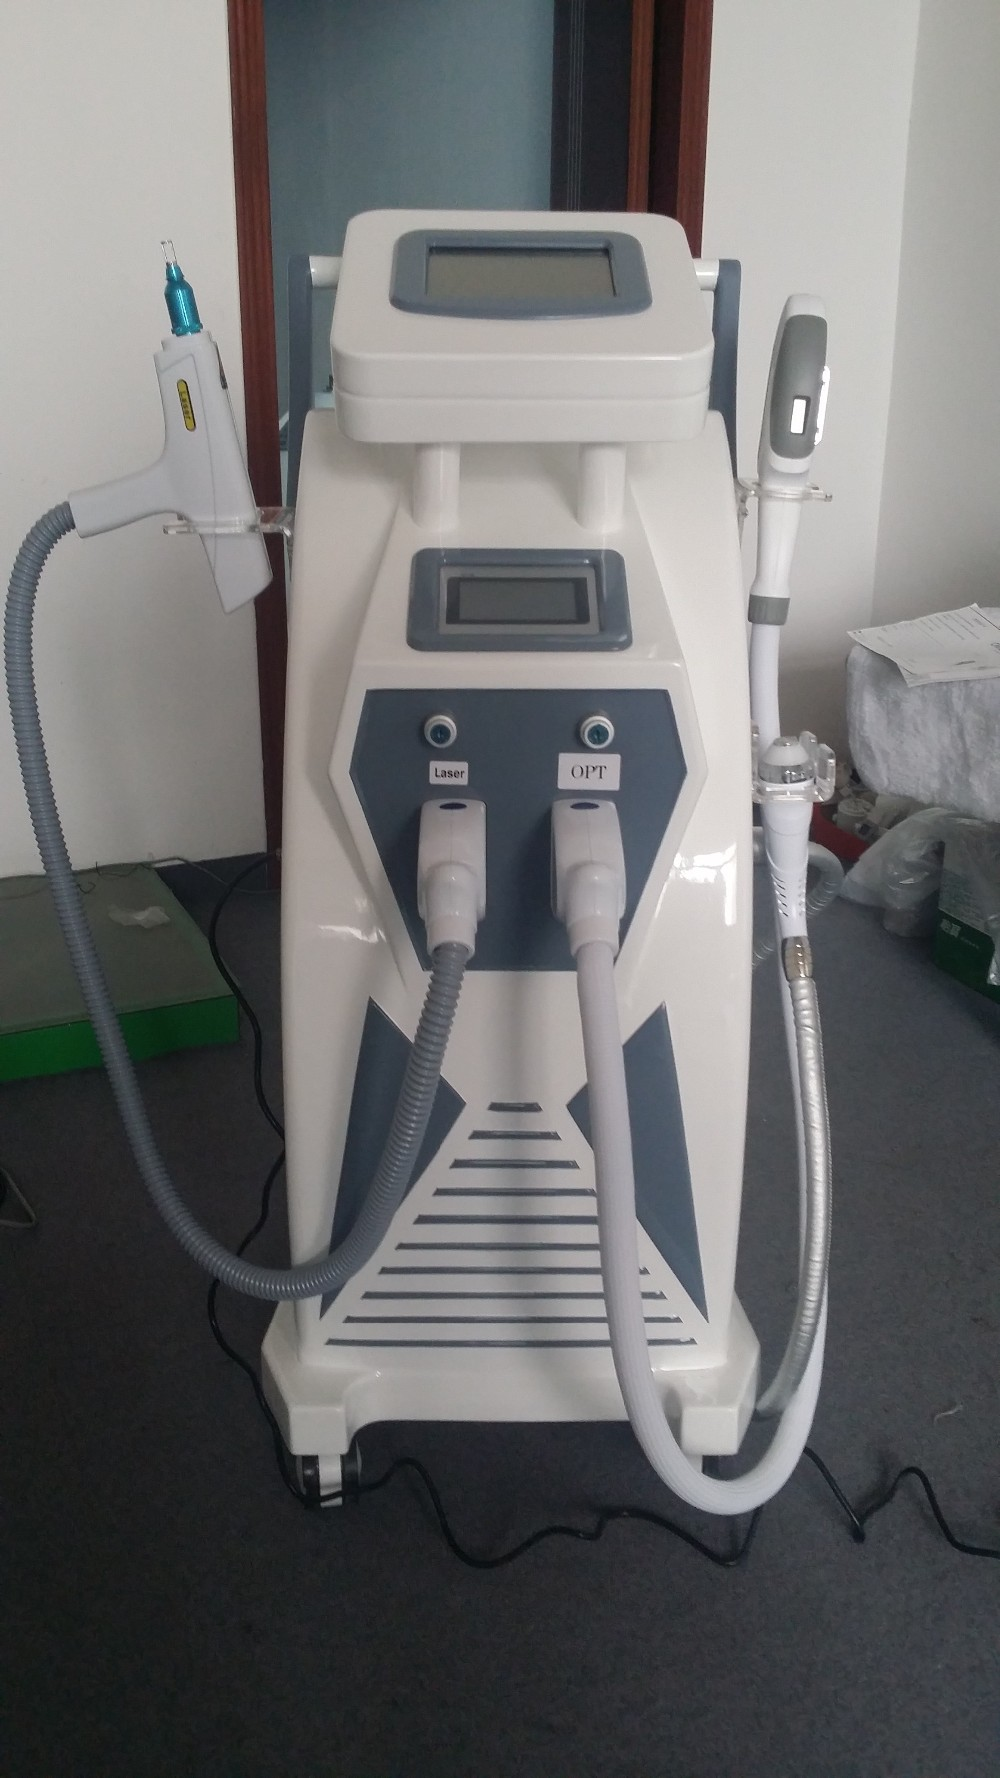 Color touch screen multifunctional beauty equipment/ Elight IPL RF ND Yag laser OPT SHR